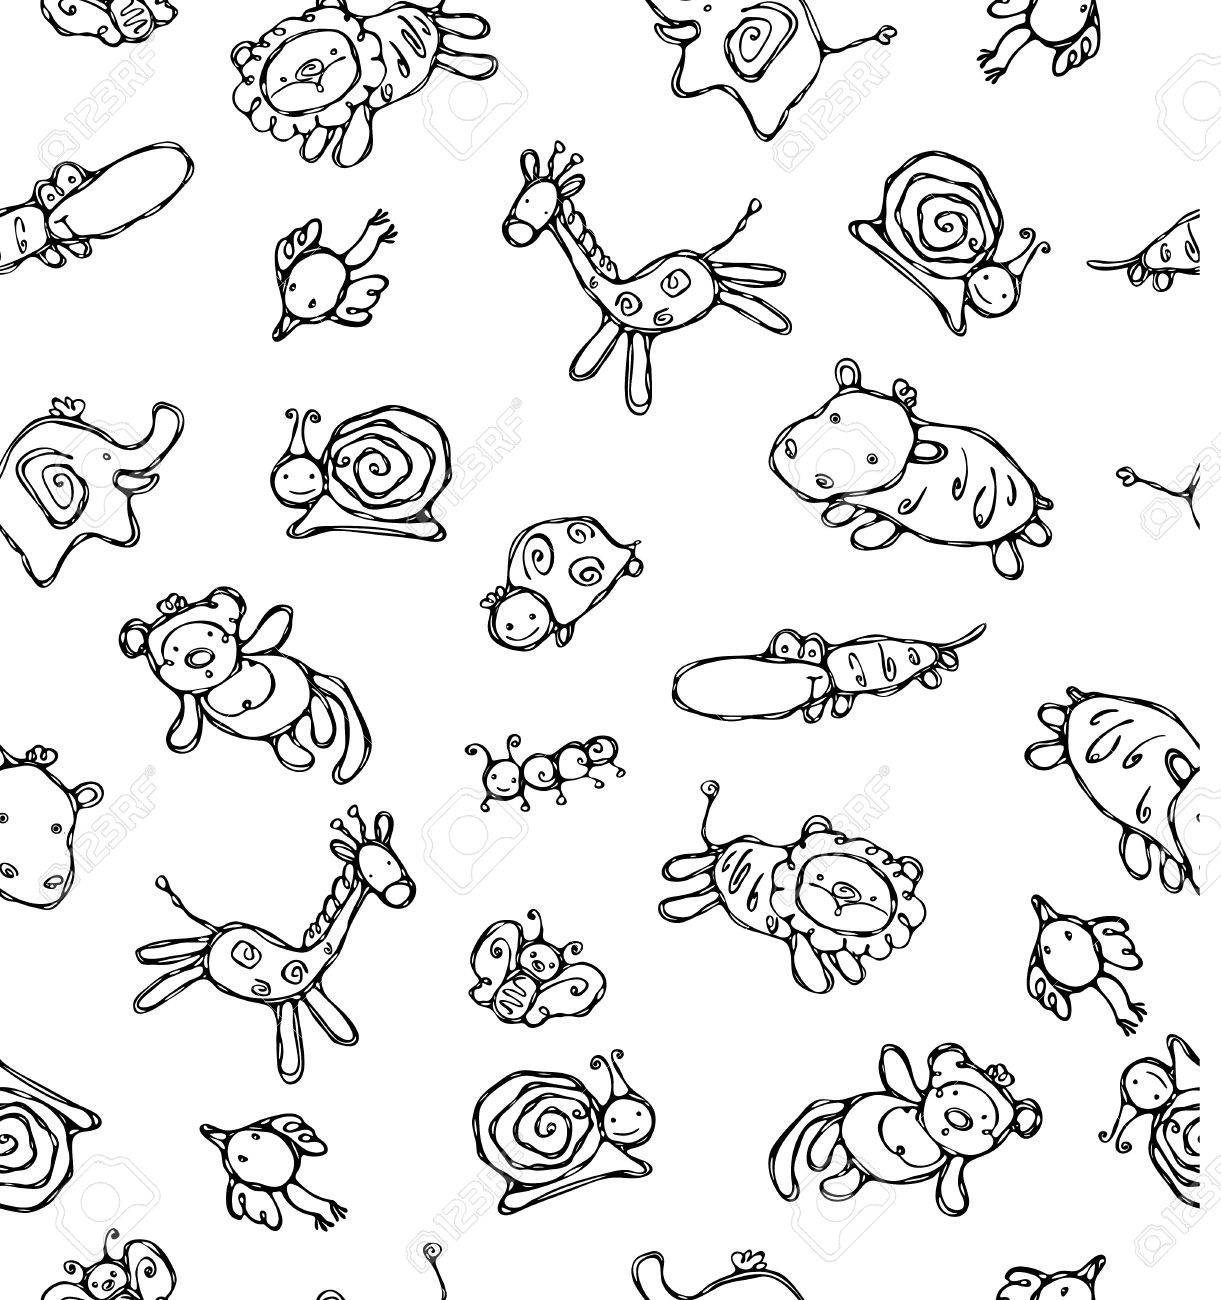 Seamless pattern of cute animals. Stock Vector - 9323874